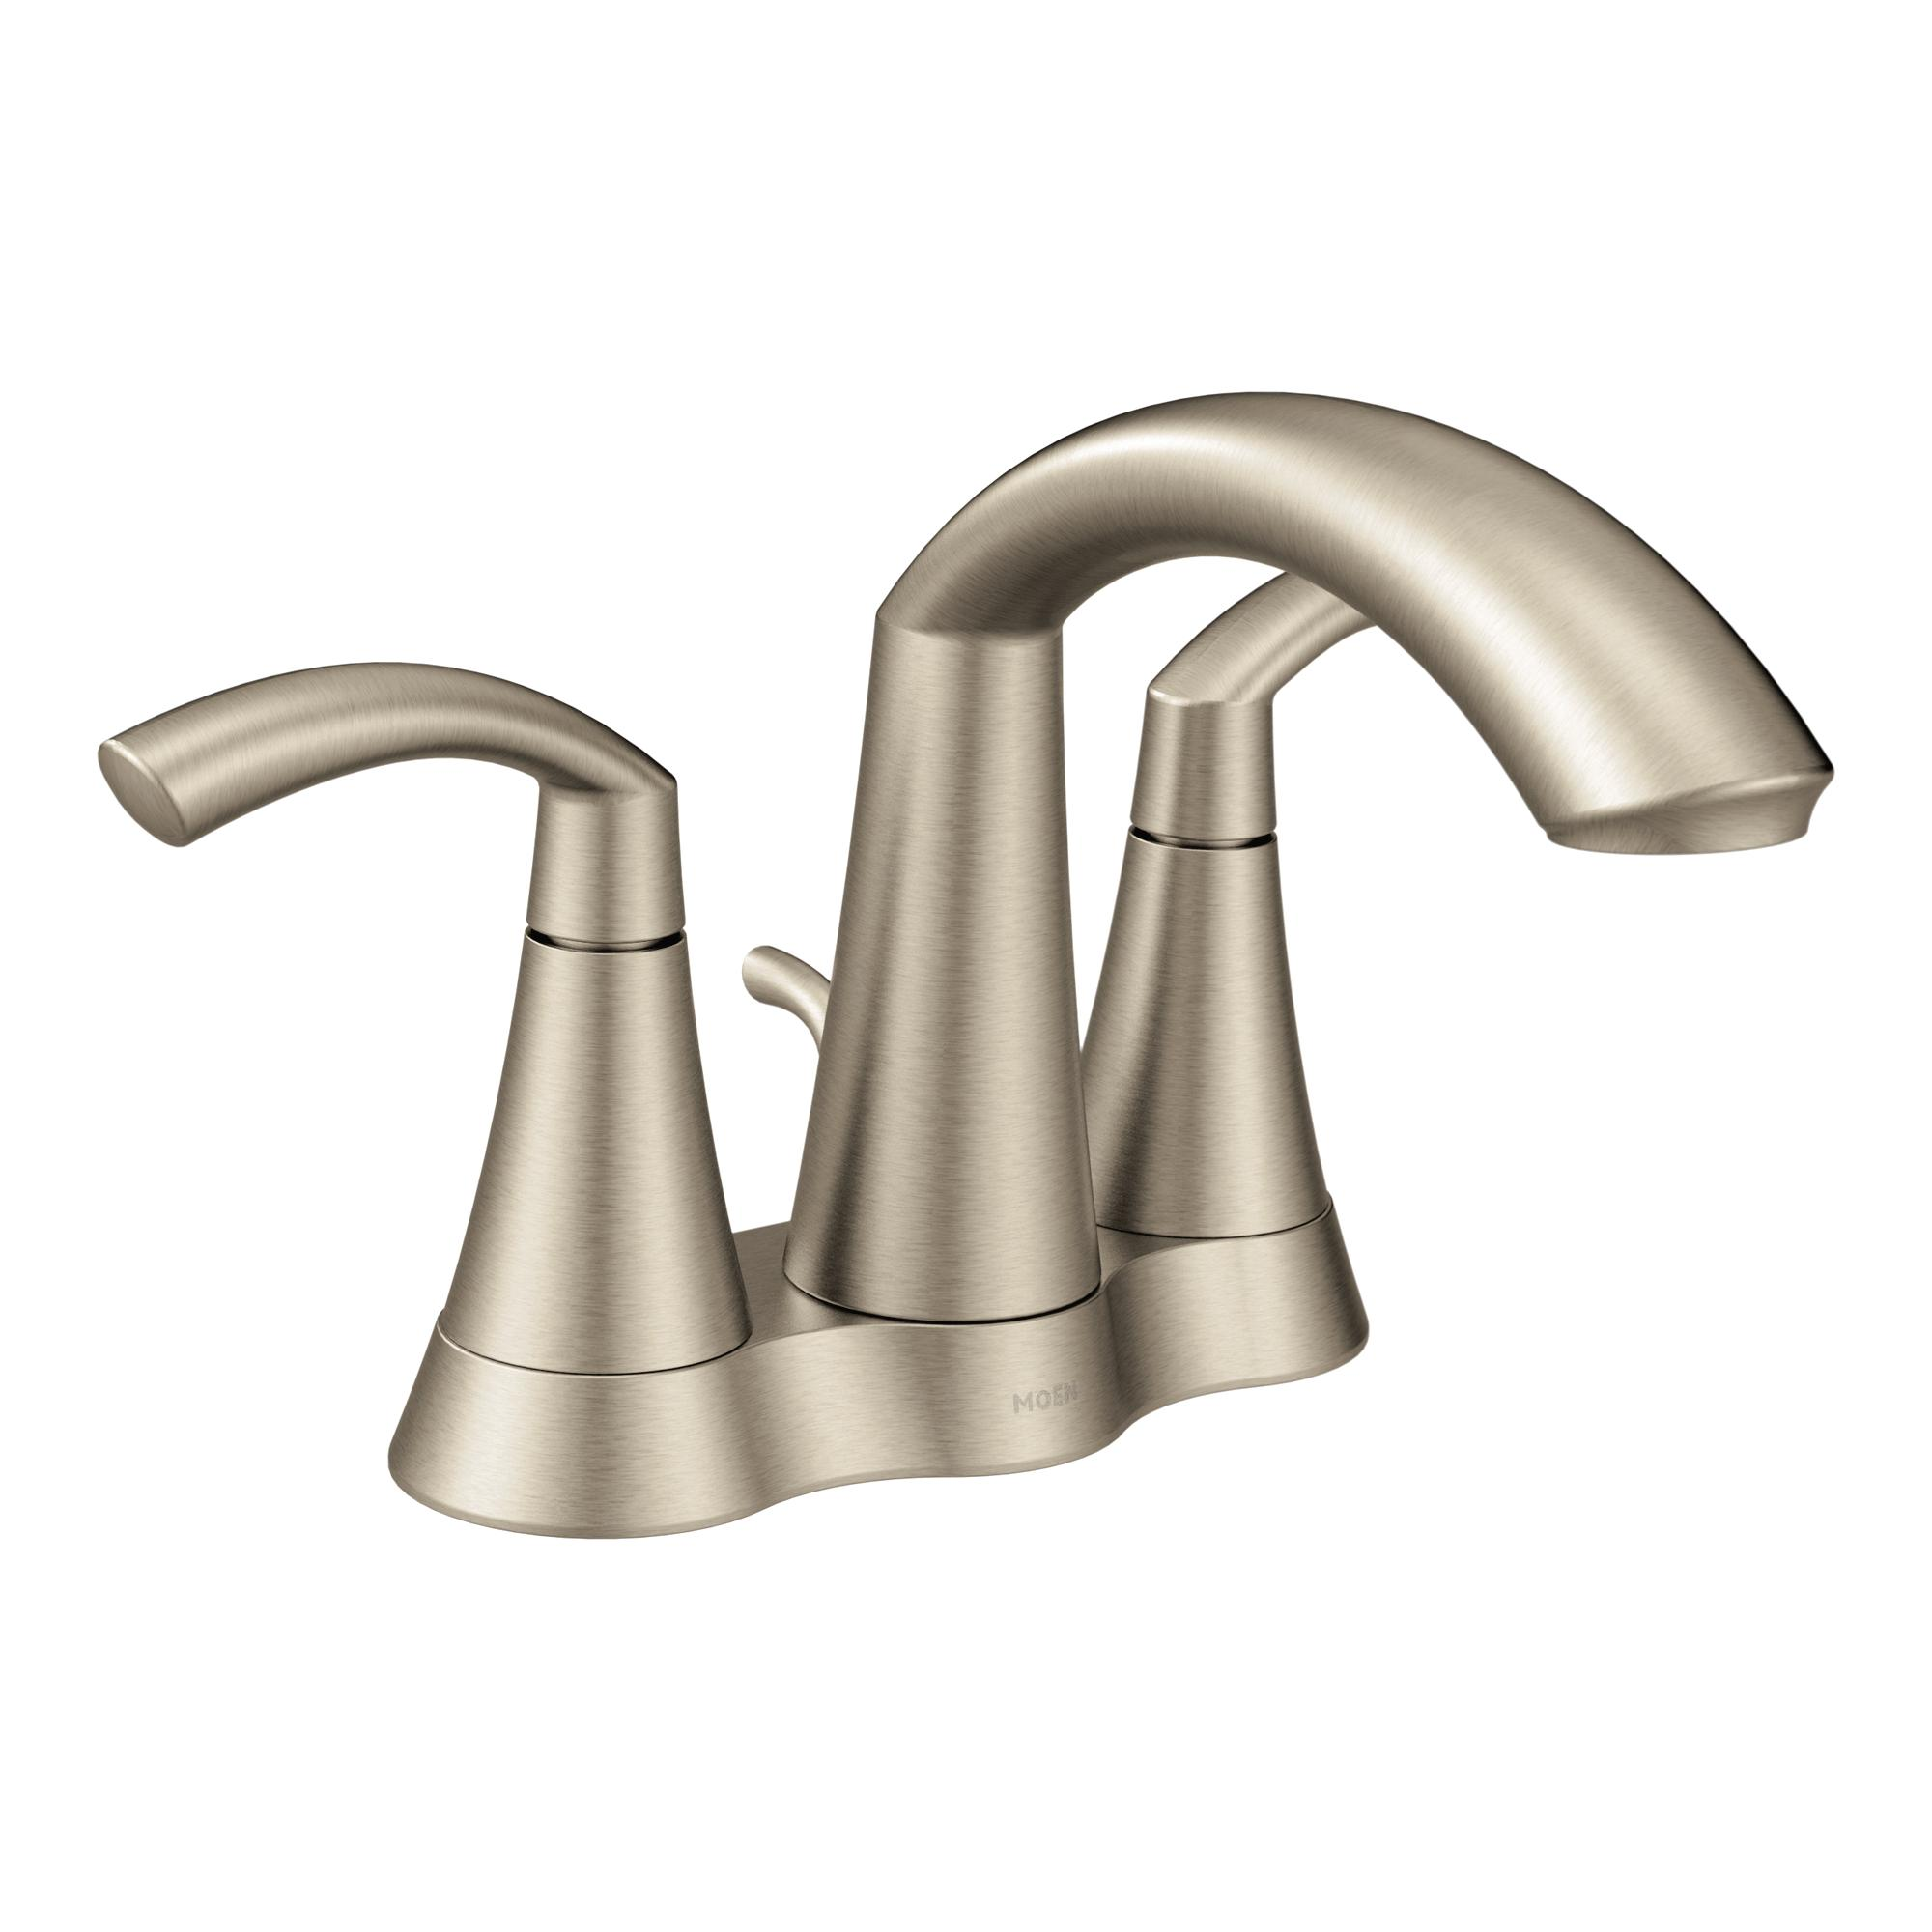 Moen 6172 glyde two handle high arc bathroom faucet chrome Amazon bathroom faucets moen